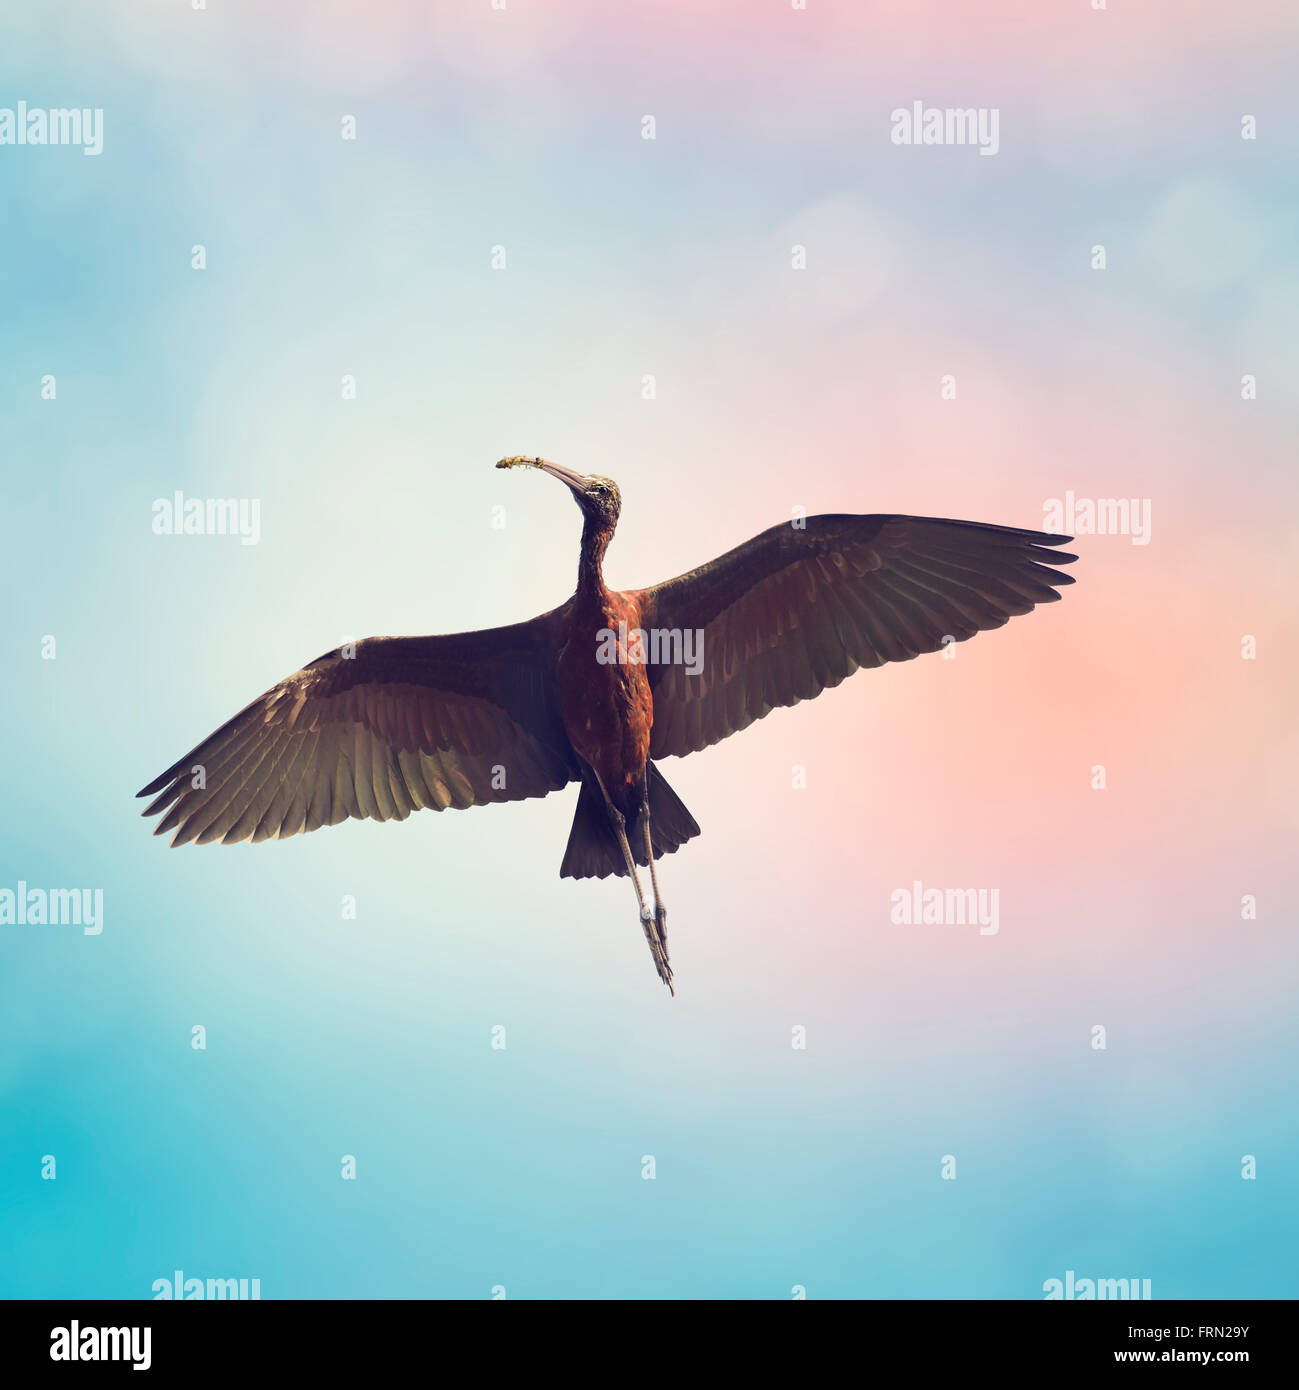 Glossy Ibis in Flight Against a Blue Sky - Stock Image